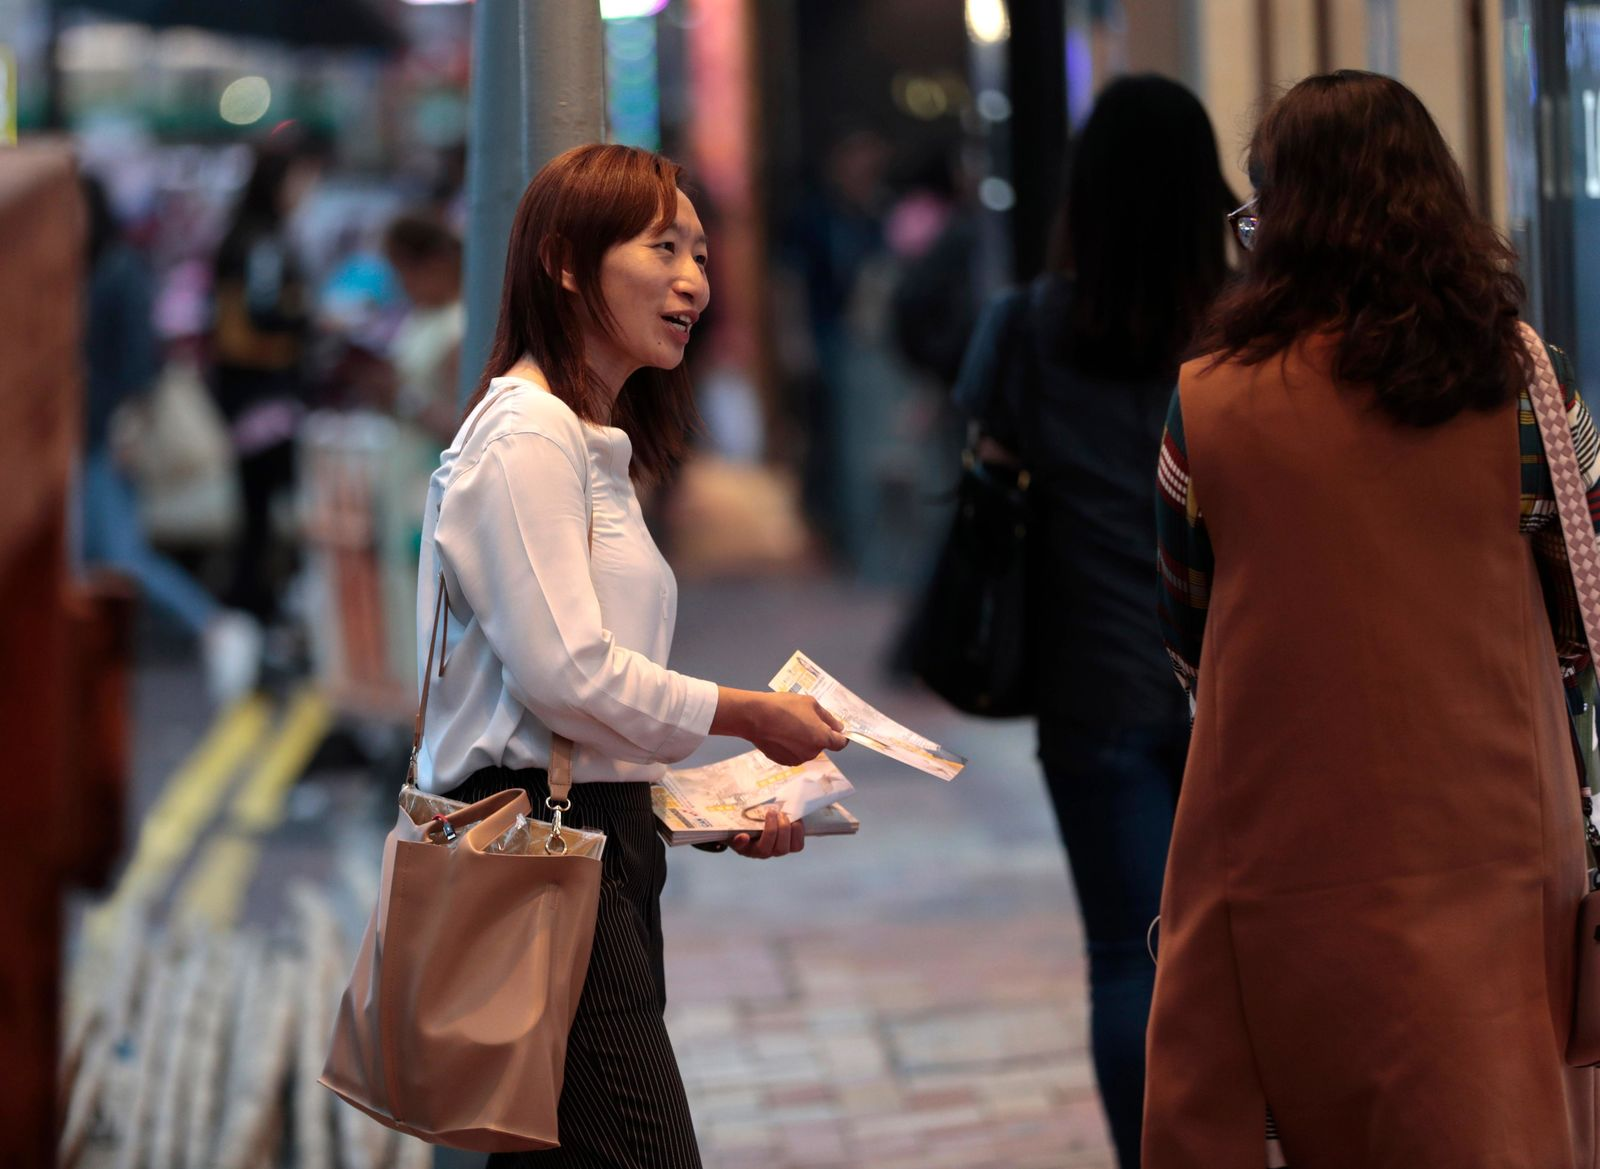 In this photo taken Thursday, Nov. 7, 2019, district council candidate Cathy Yau distributes flyers to pedestrians during her campaign at Causeway Bay in Hong Kong. Yau. a former police officer, grew exasperated as police used more force to quell the unrest. (AP Photo/Dita Alangkara)